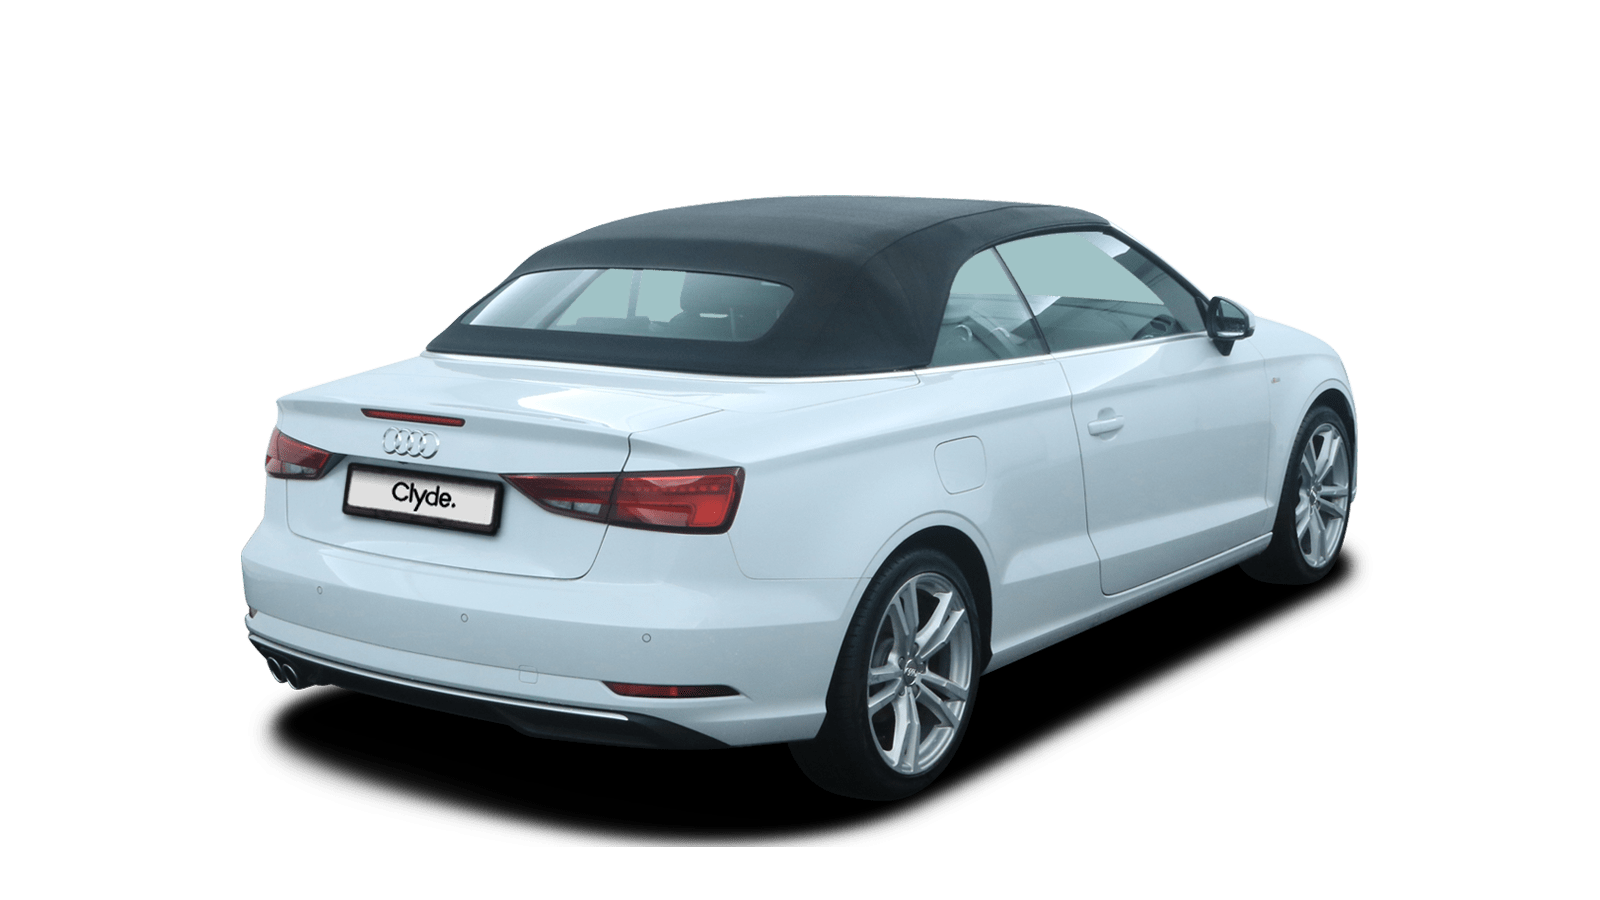 Audi A3 Cabriolet White back - Clyde car subscription